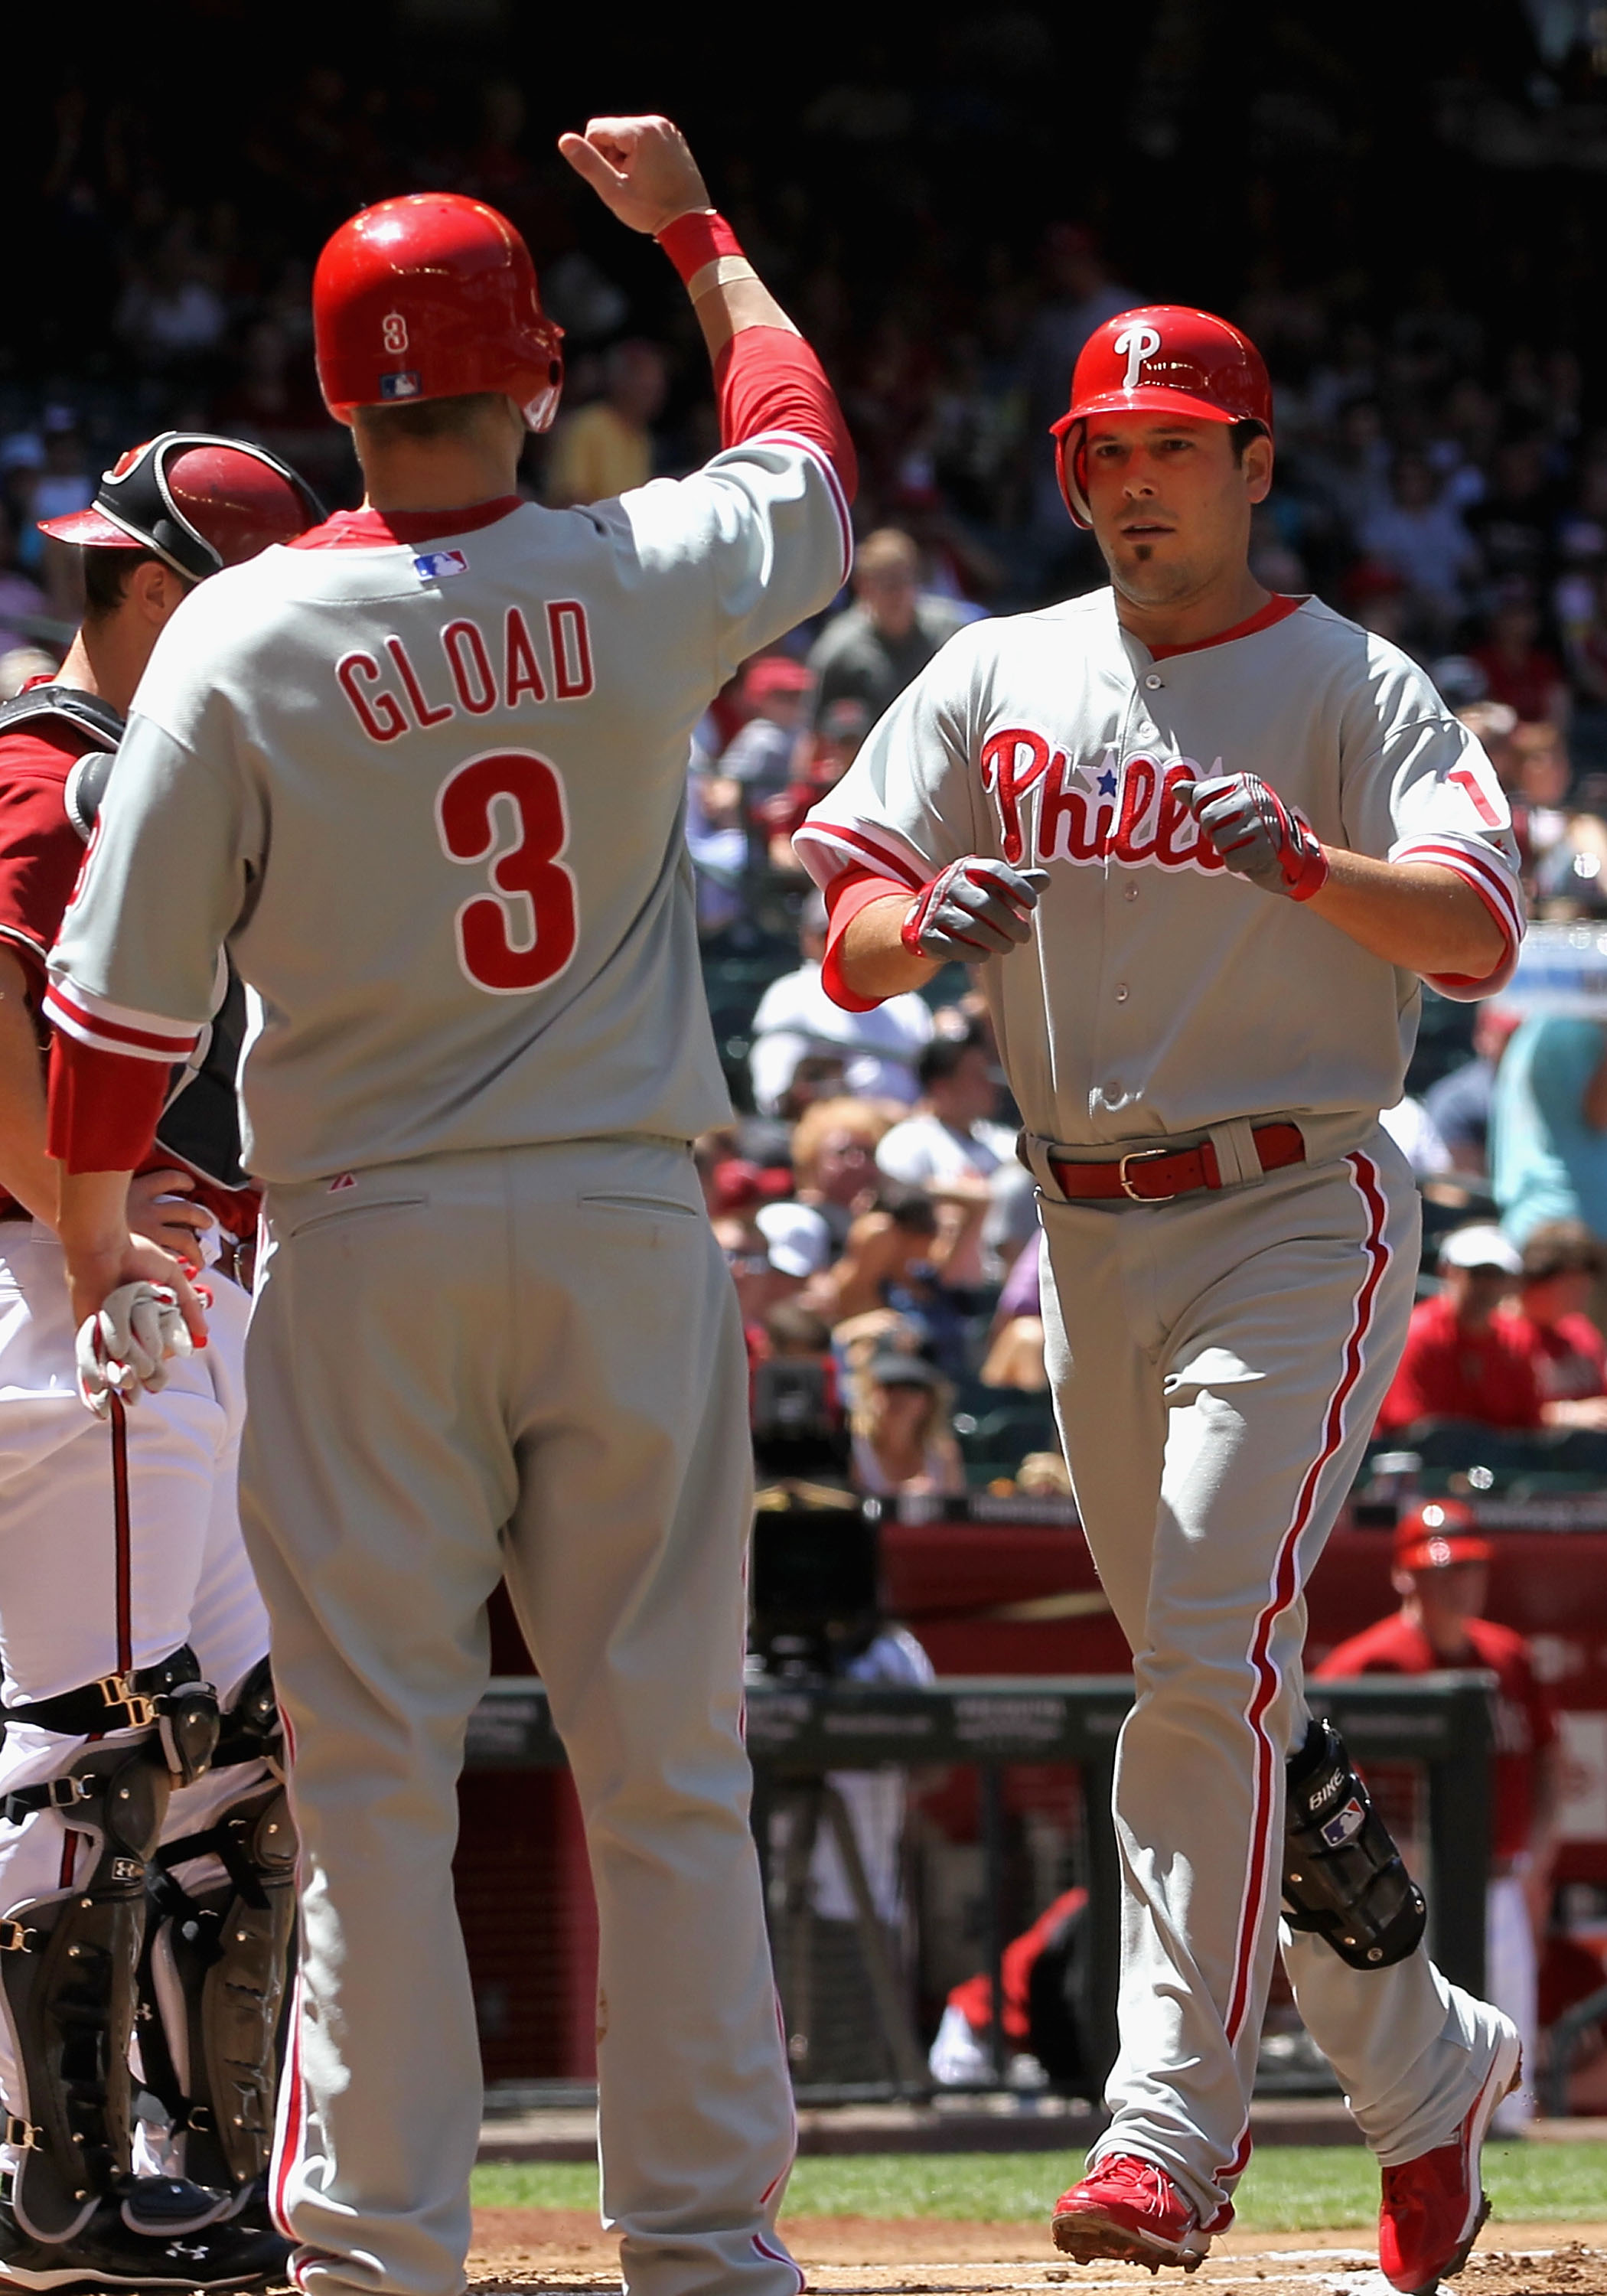 PHOENIX - APRIL 25:  Greg Dobbs #19 of the Philadelphia Phillies is congratulated by teammate Ross Gload #3 after Dobbs hit a 2 run home run against the Arizona Diamondbacks during the first inning of the Major League Baseball game at Chase Field on April